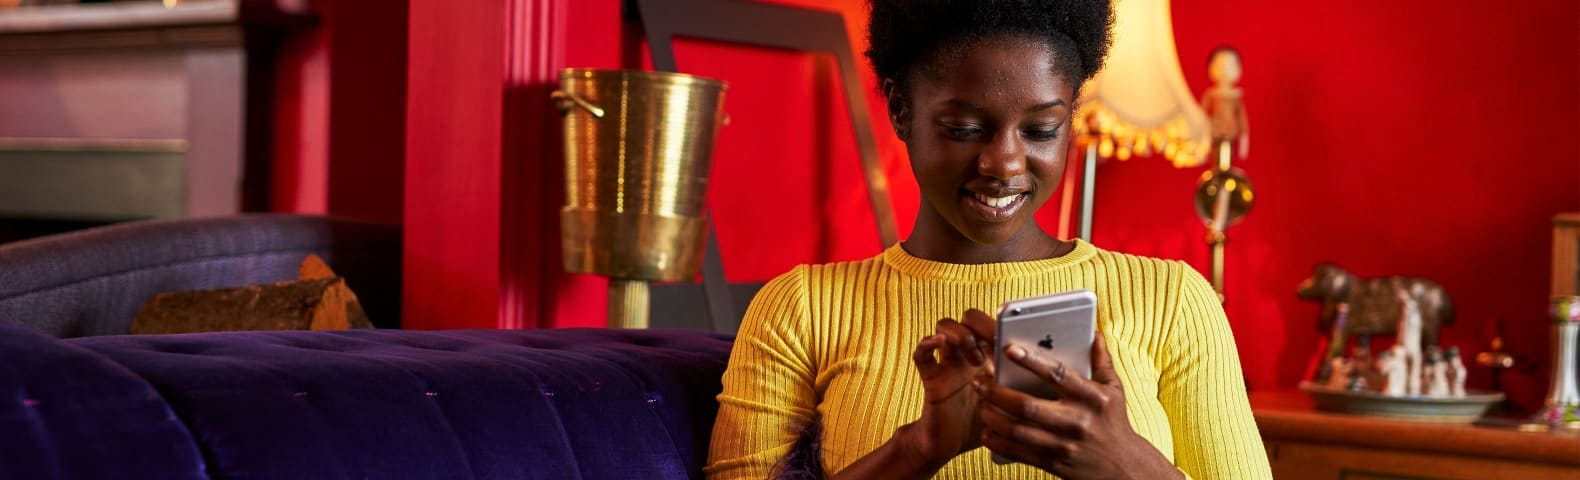 Young African woman on purple sofa and with red background texting on phone.